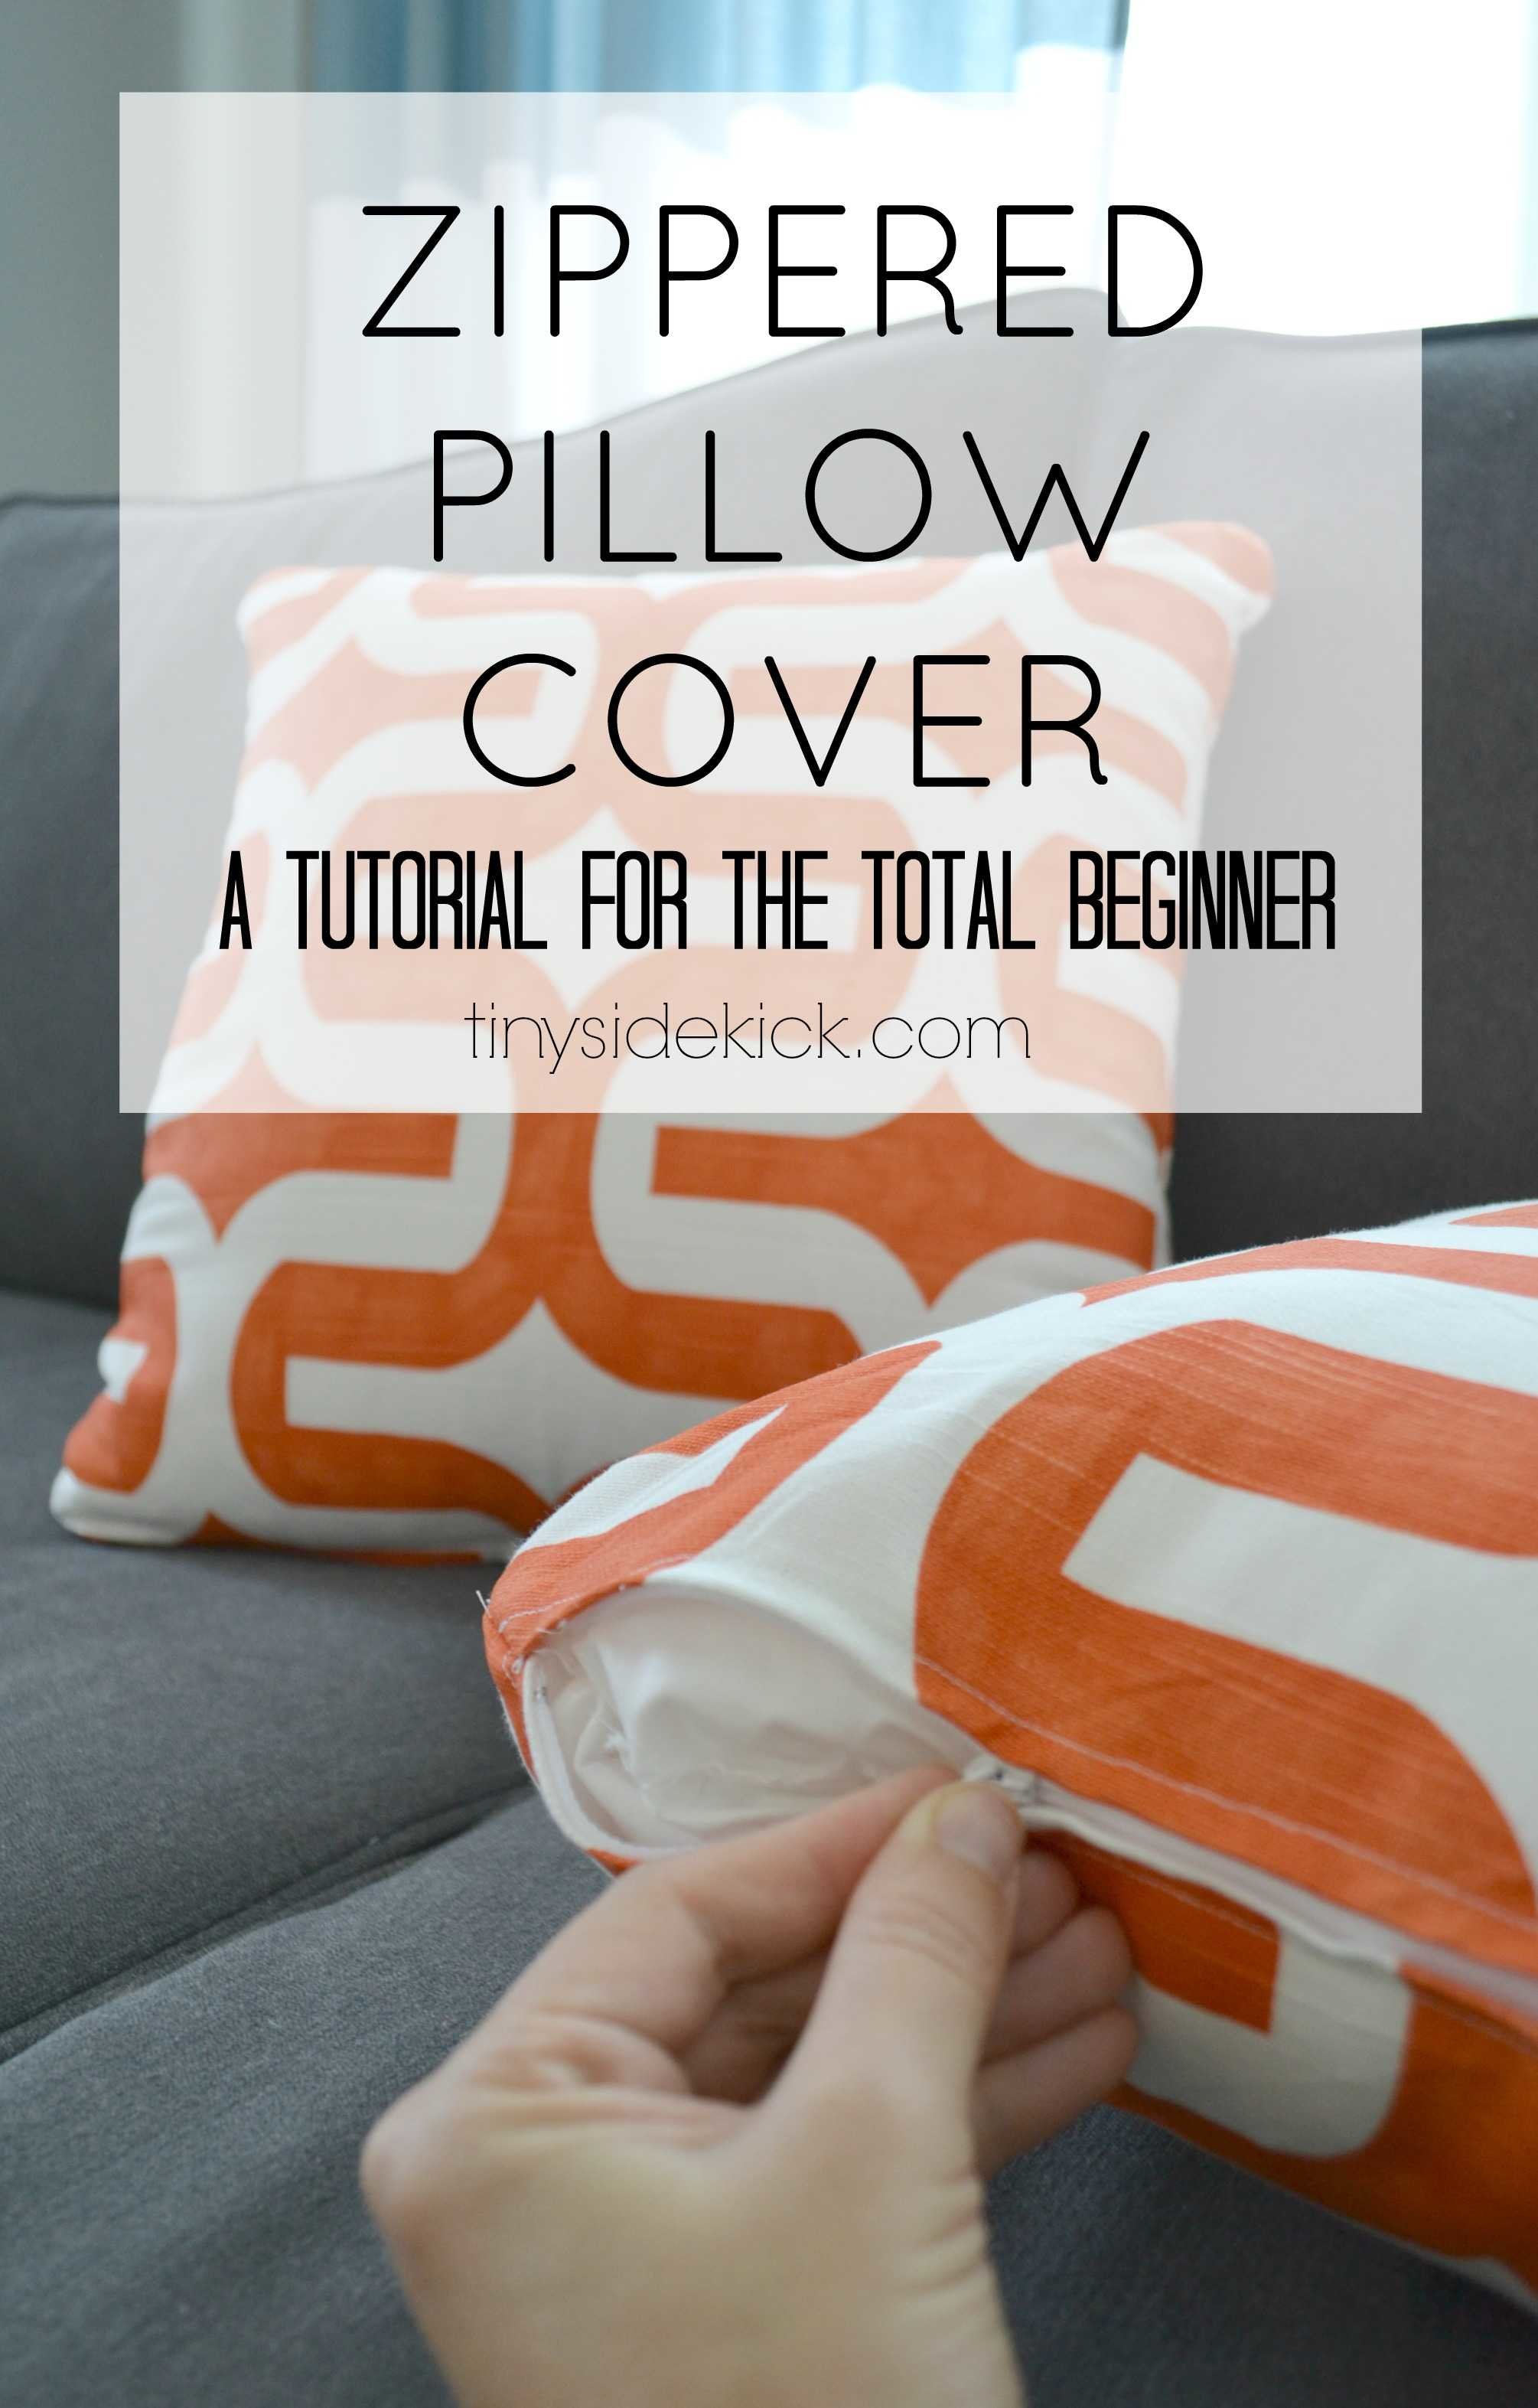 How To Make A Decorative Pillow With A Zipper : How to Make a Zippered Pillow Cover (tutorial for beginners)